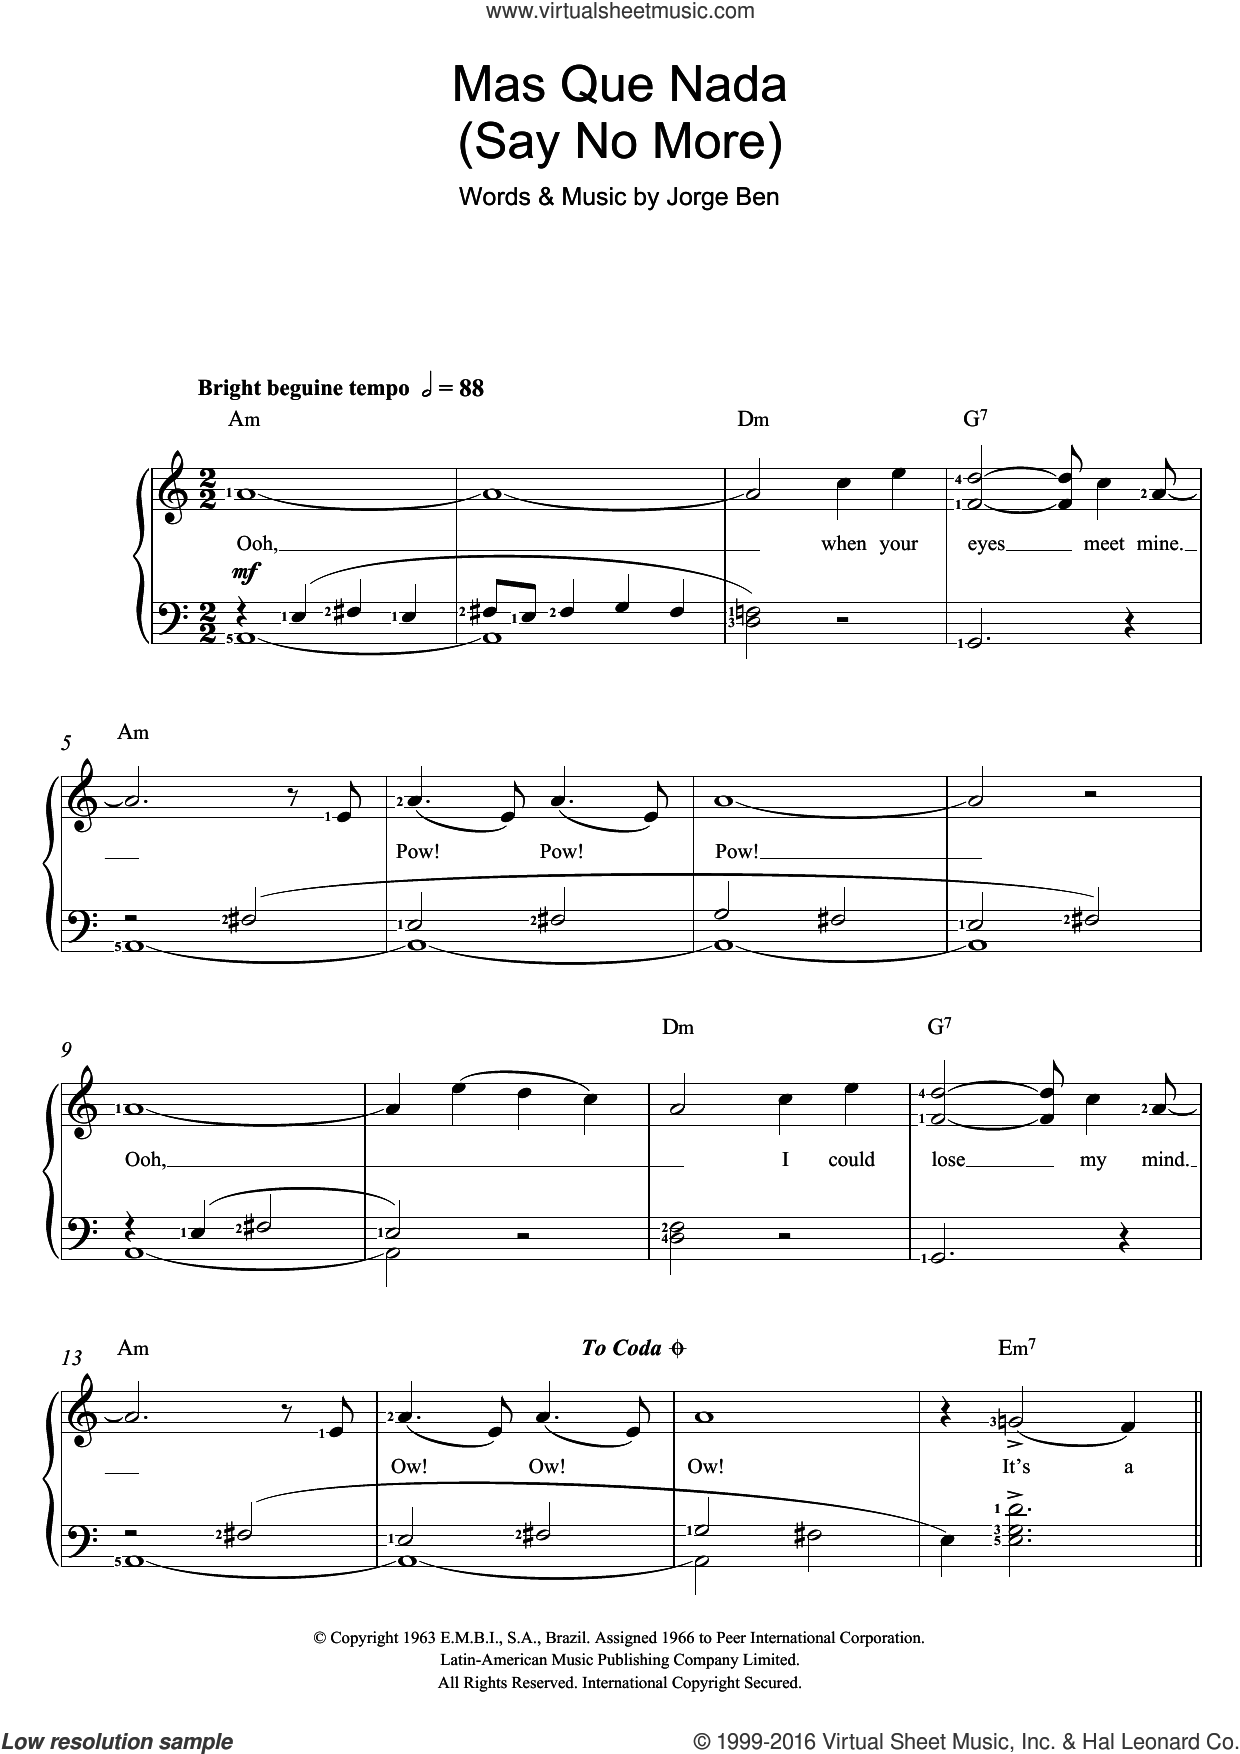 Mas Que Nada (Say No More) sheet music for voice, piano or guitar by Jorge Ben, intermediate skill level